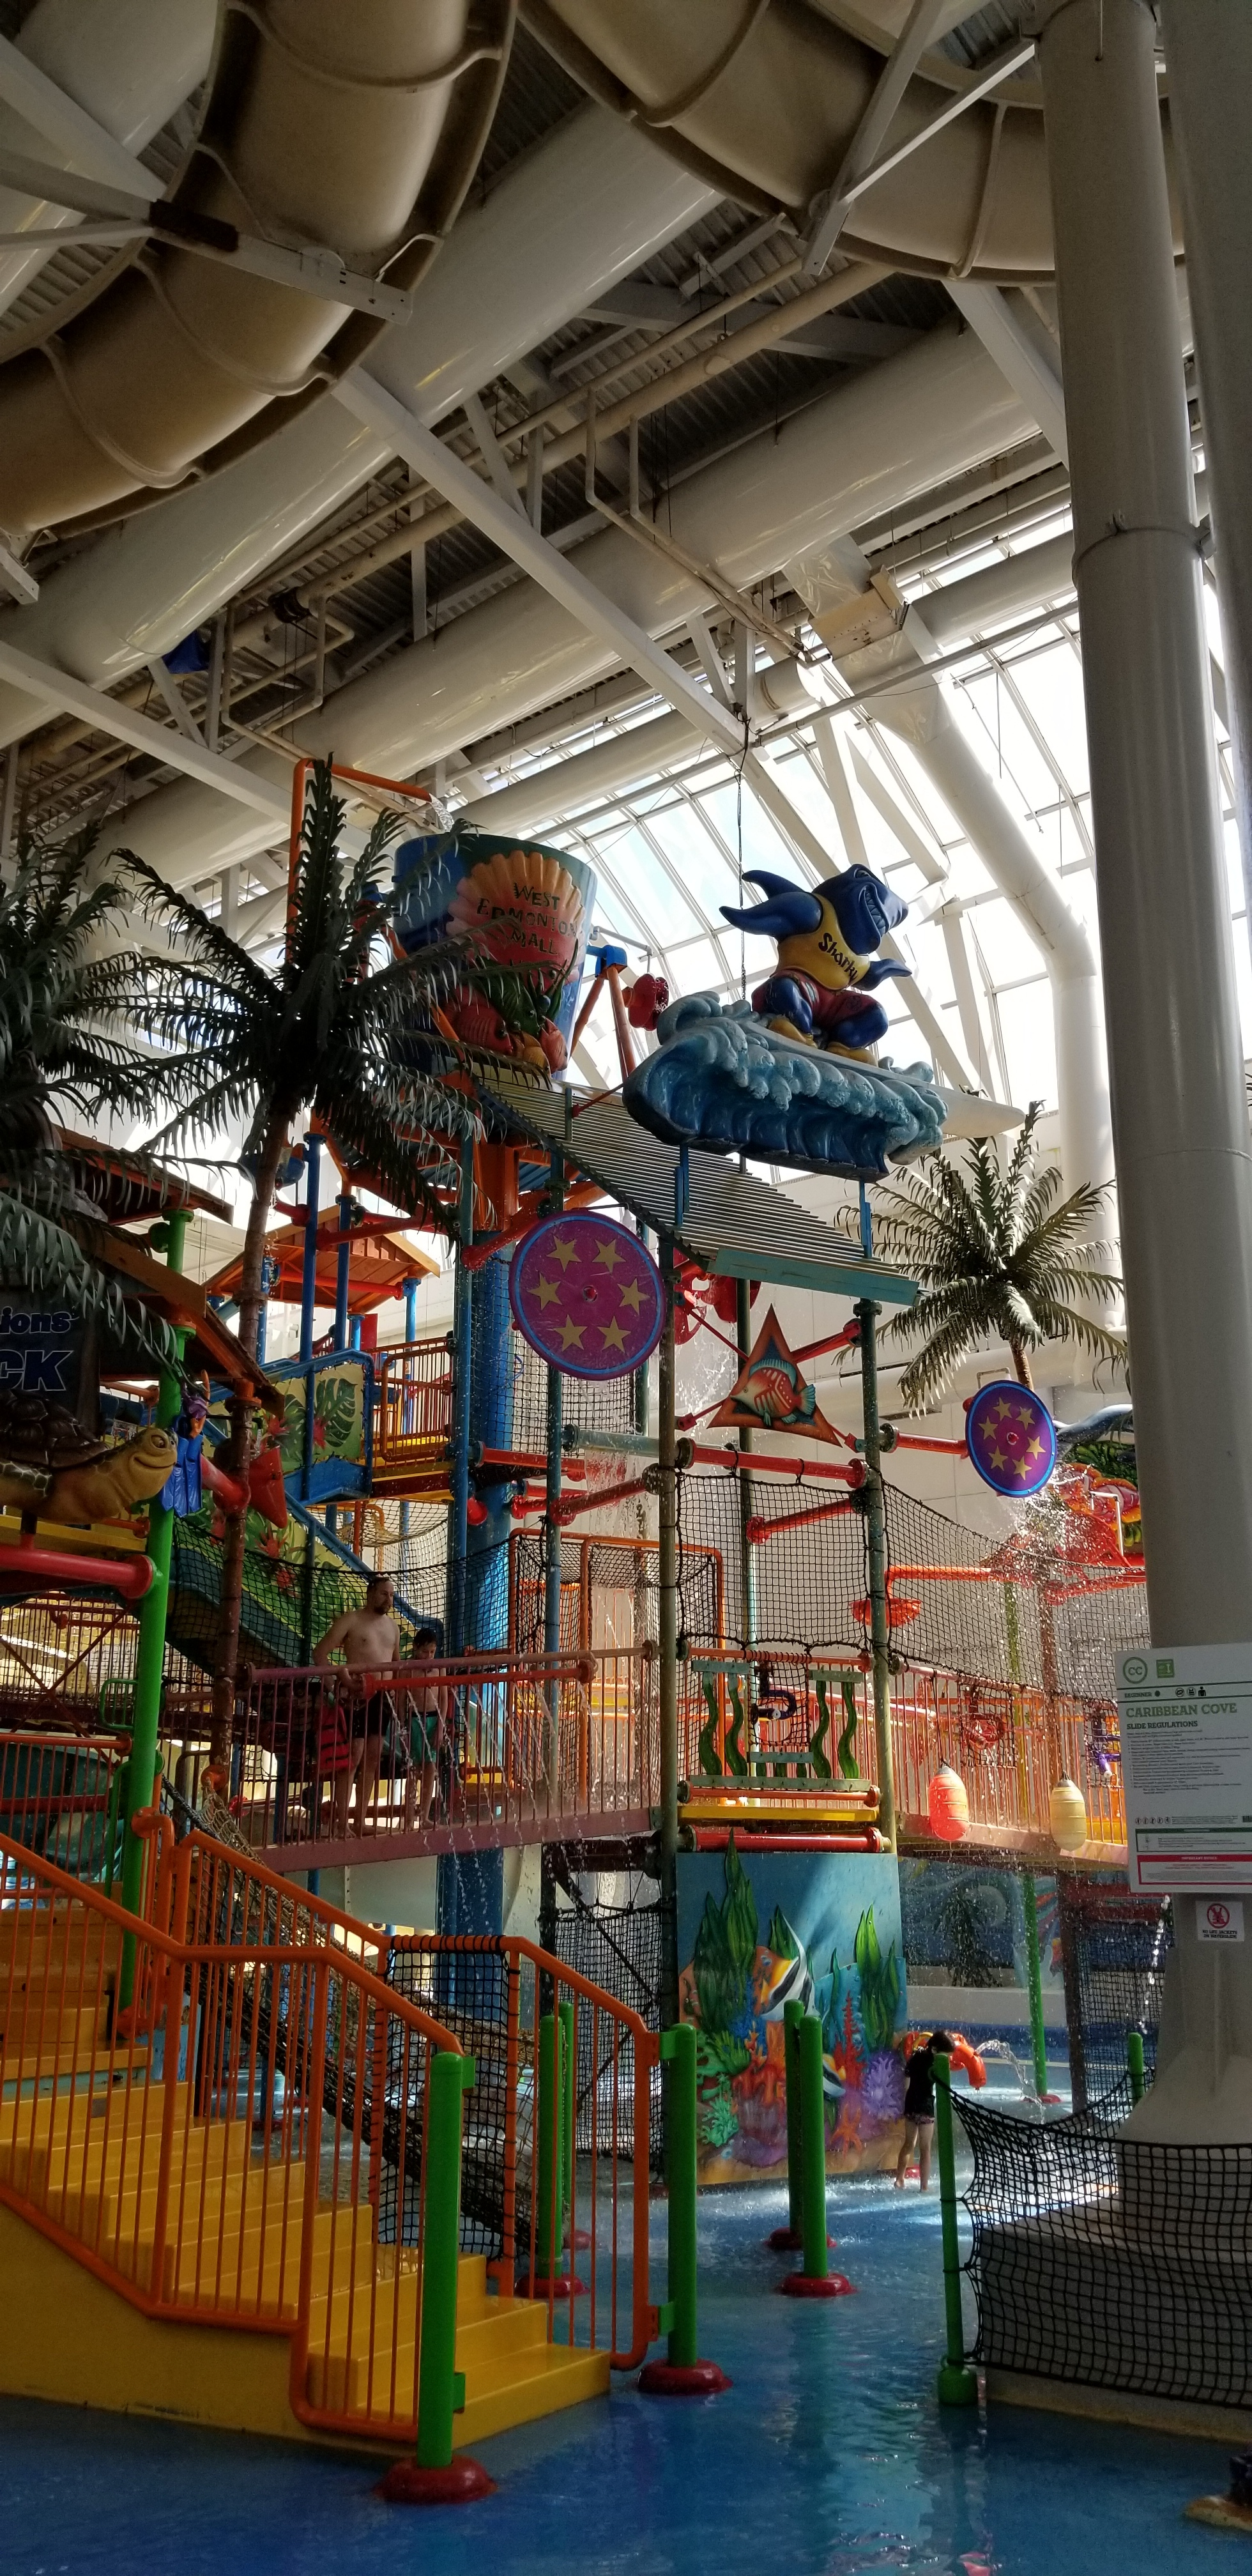 west edmonton mall world waterpark review and tips3.jpg